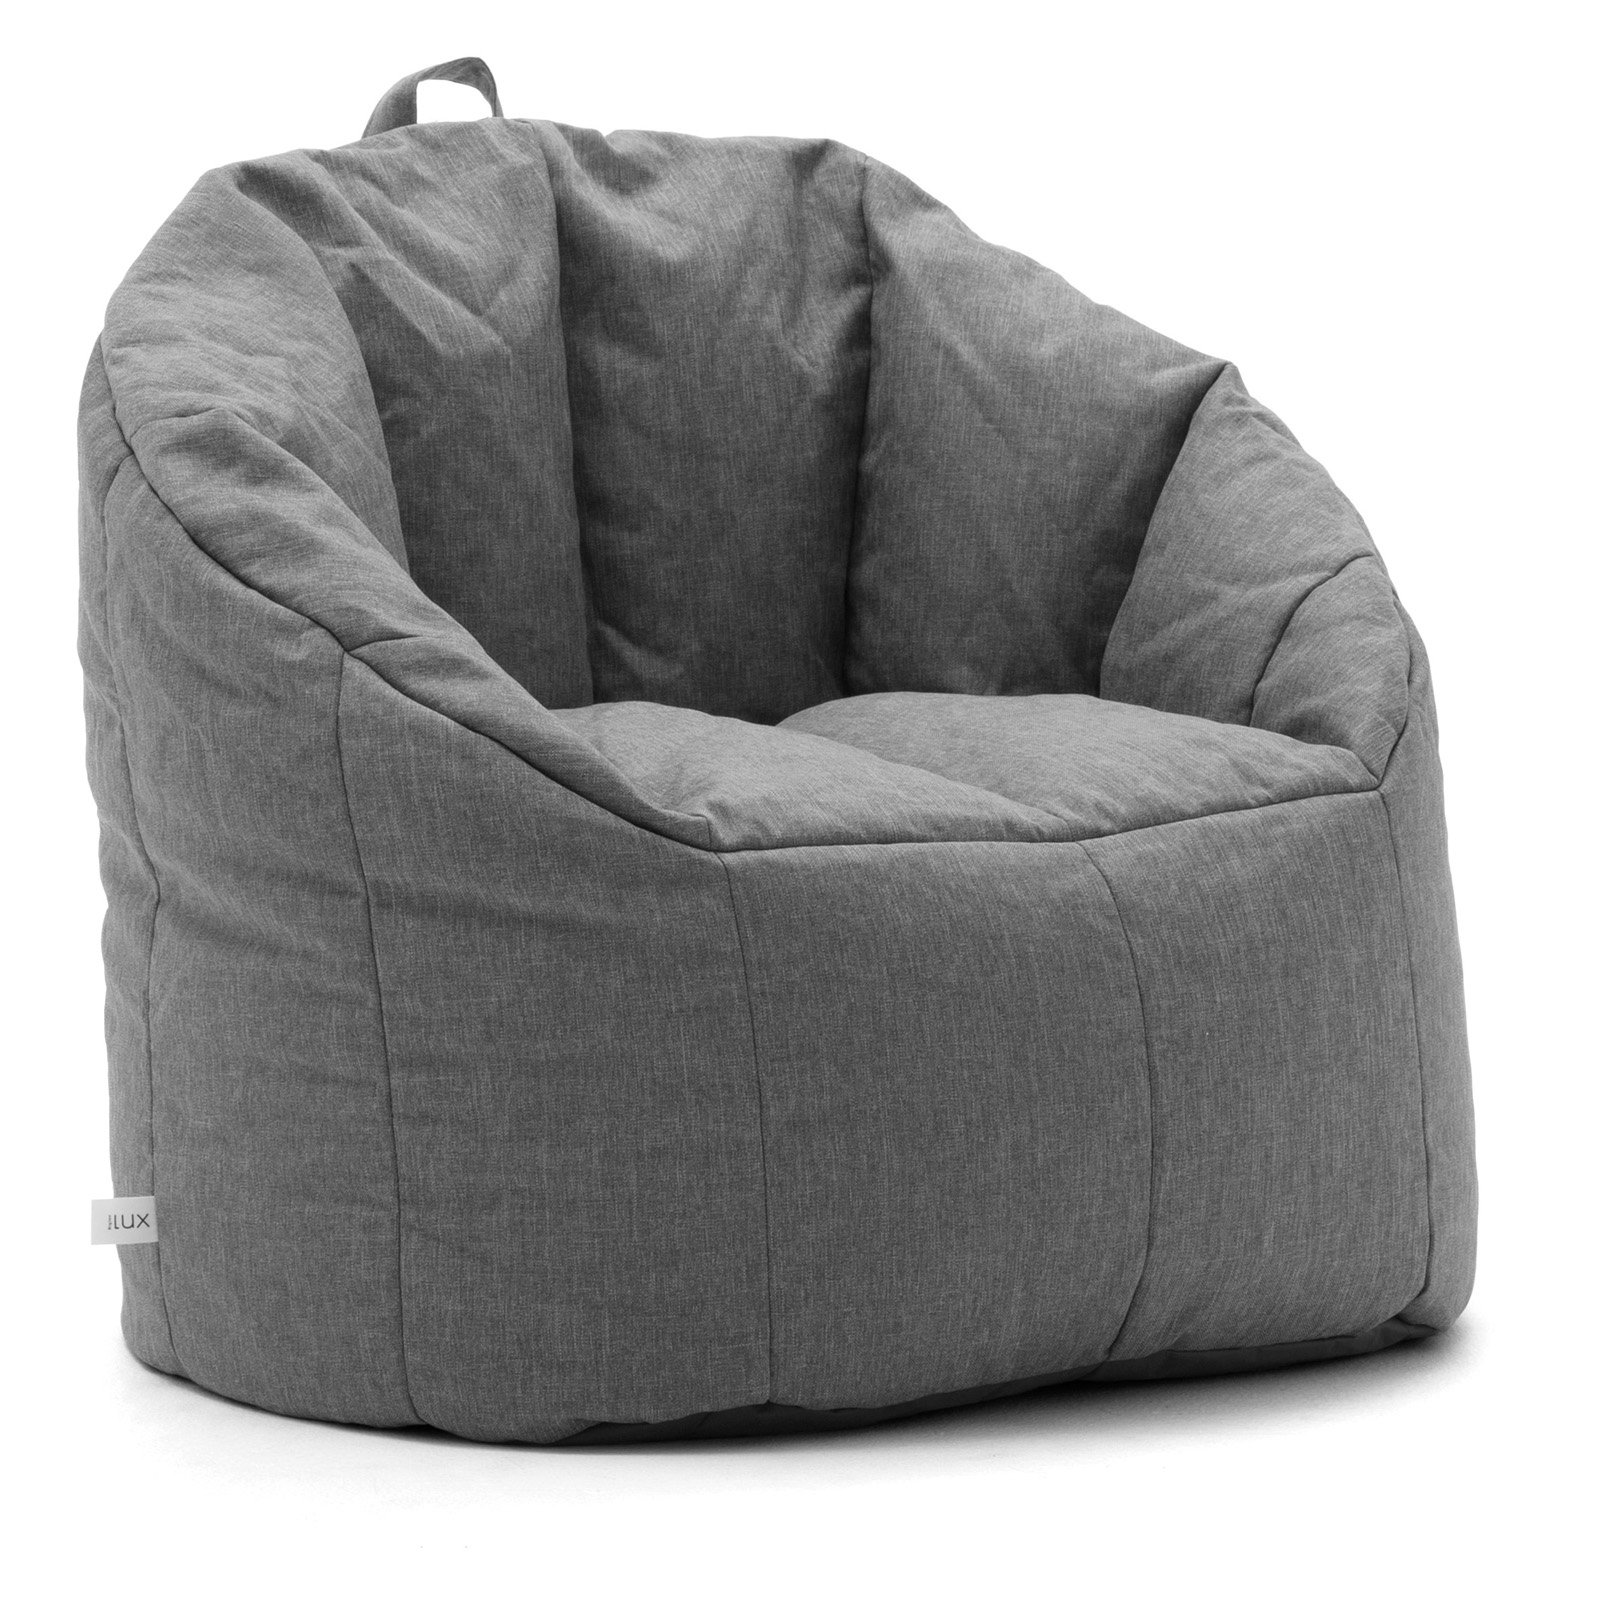 Lux by Big Joe Milano Union Bean Bag